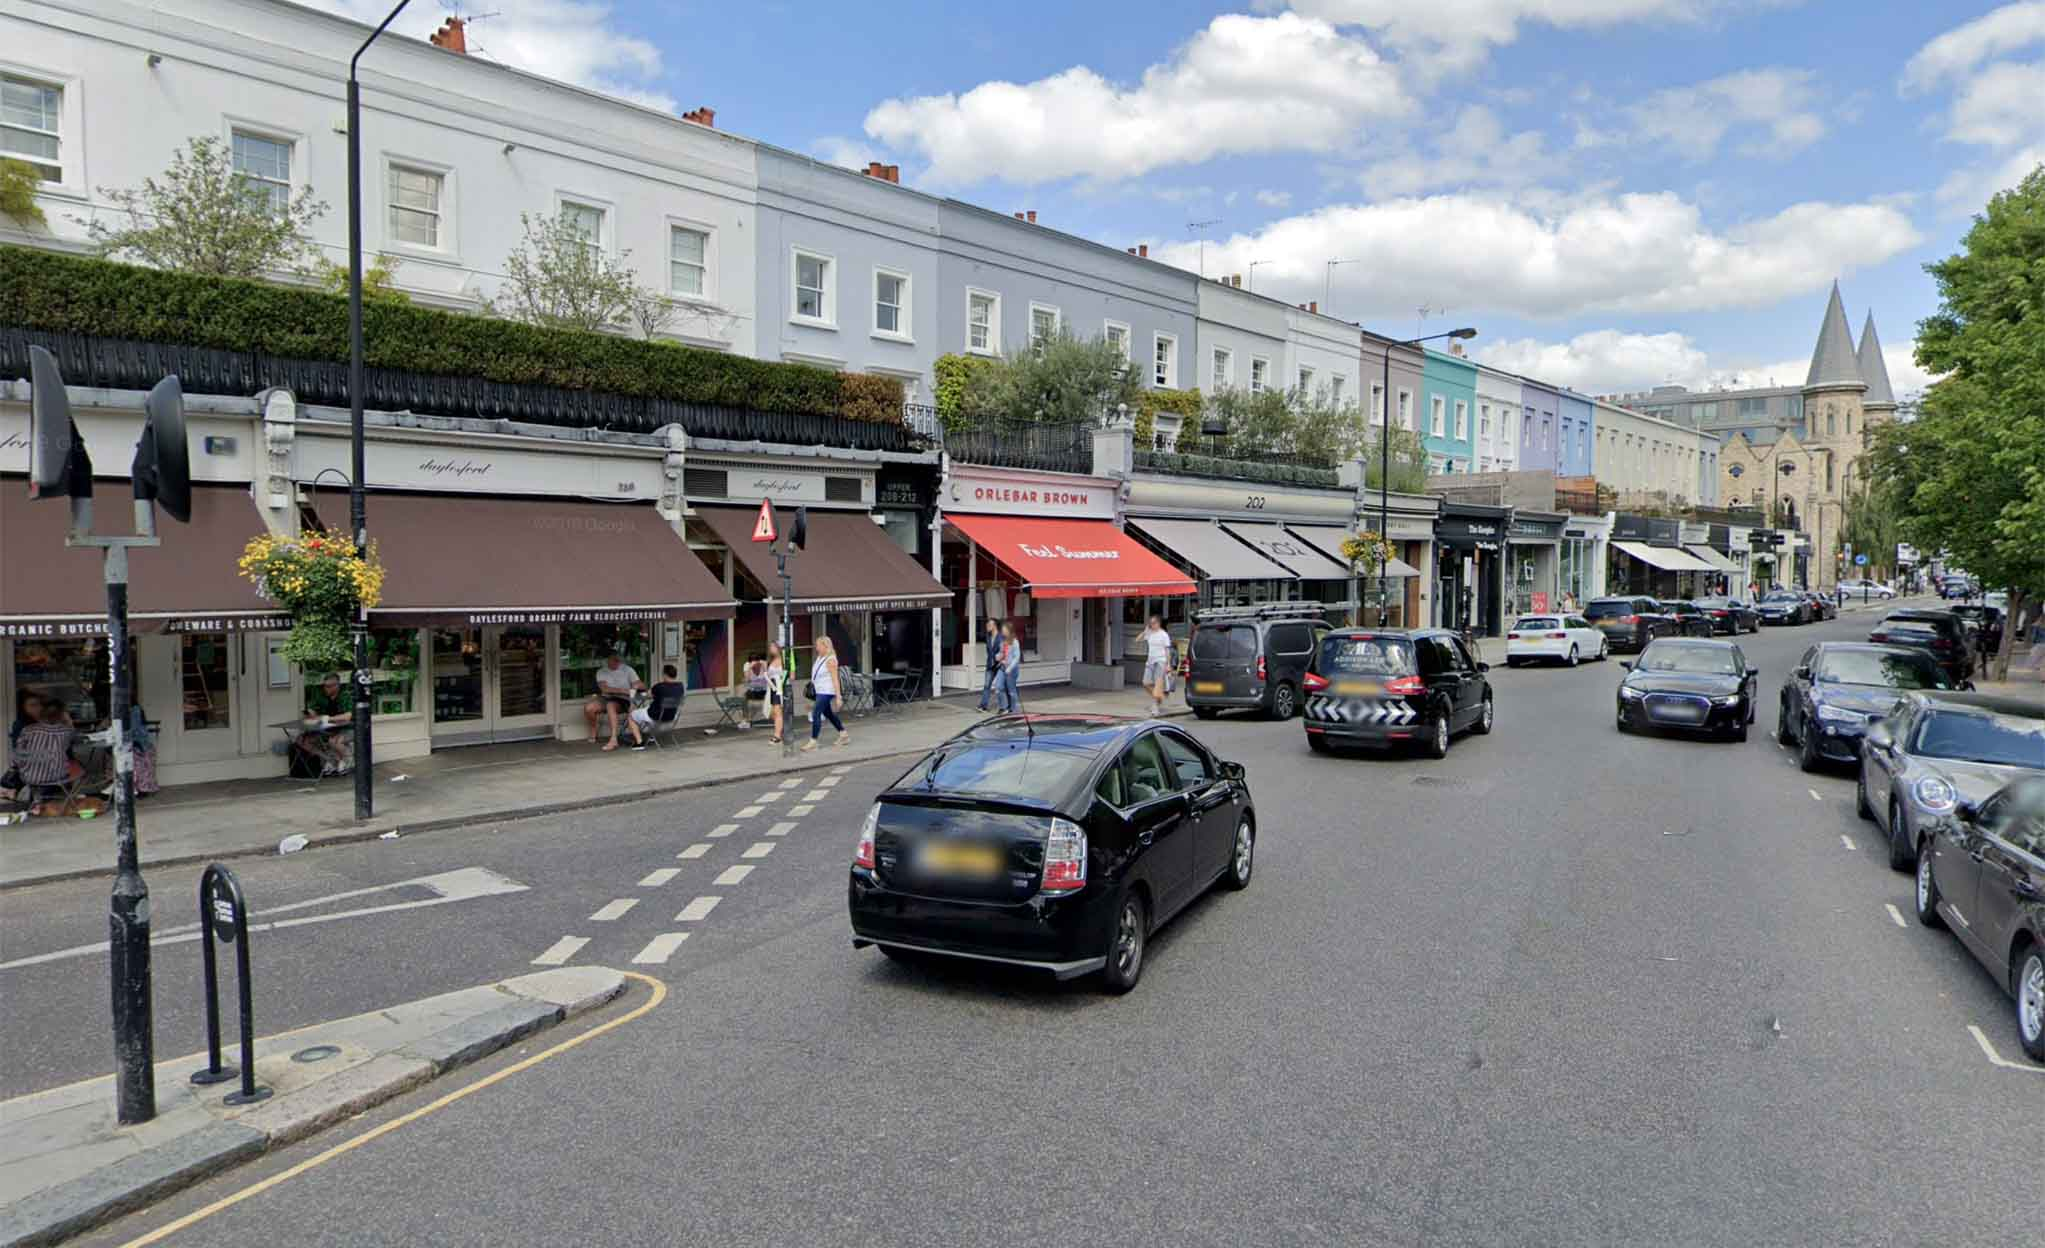 things to see in notting hill